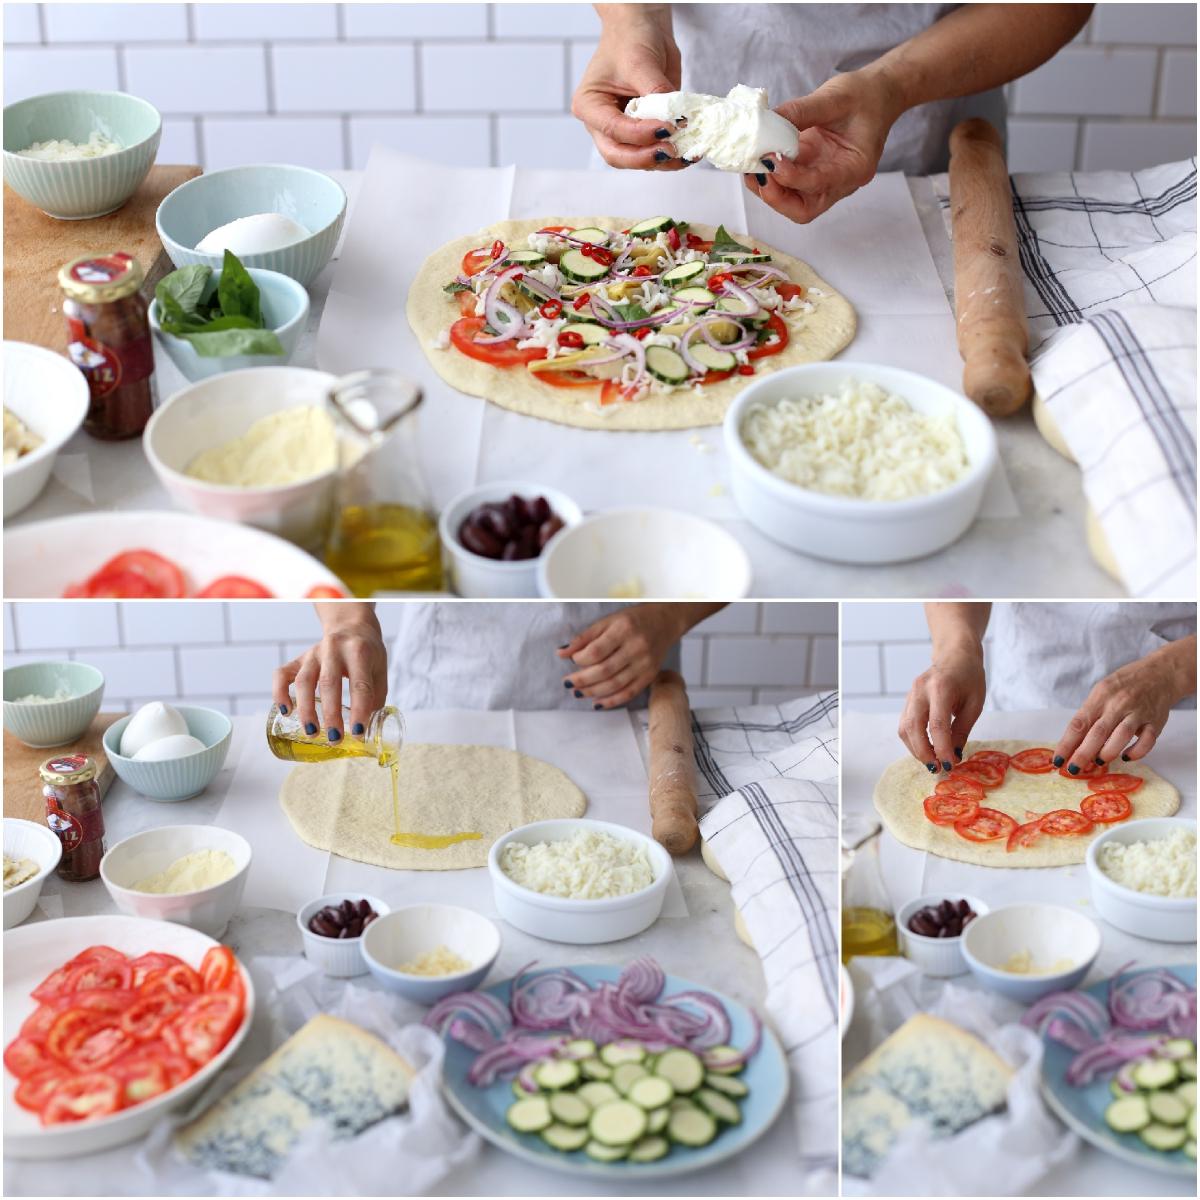 making pizza